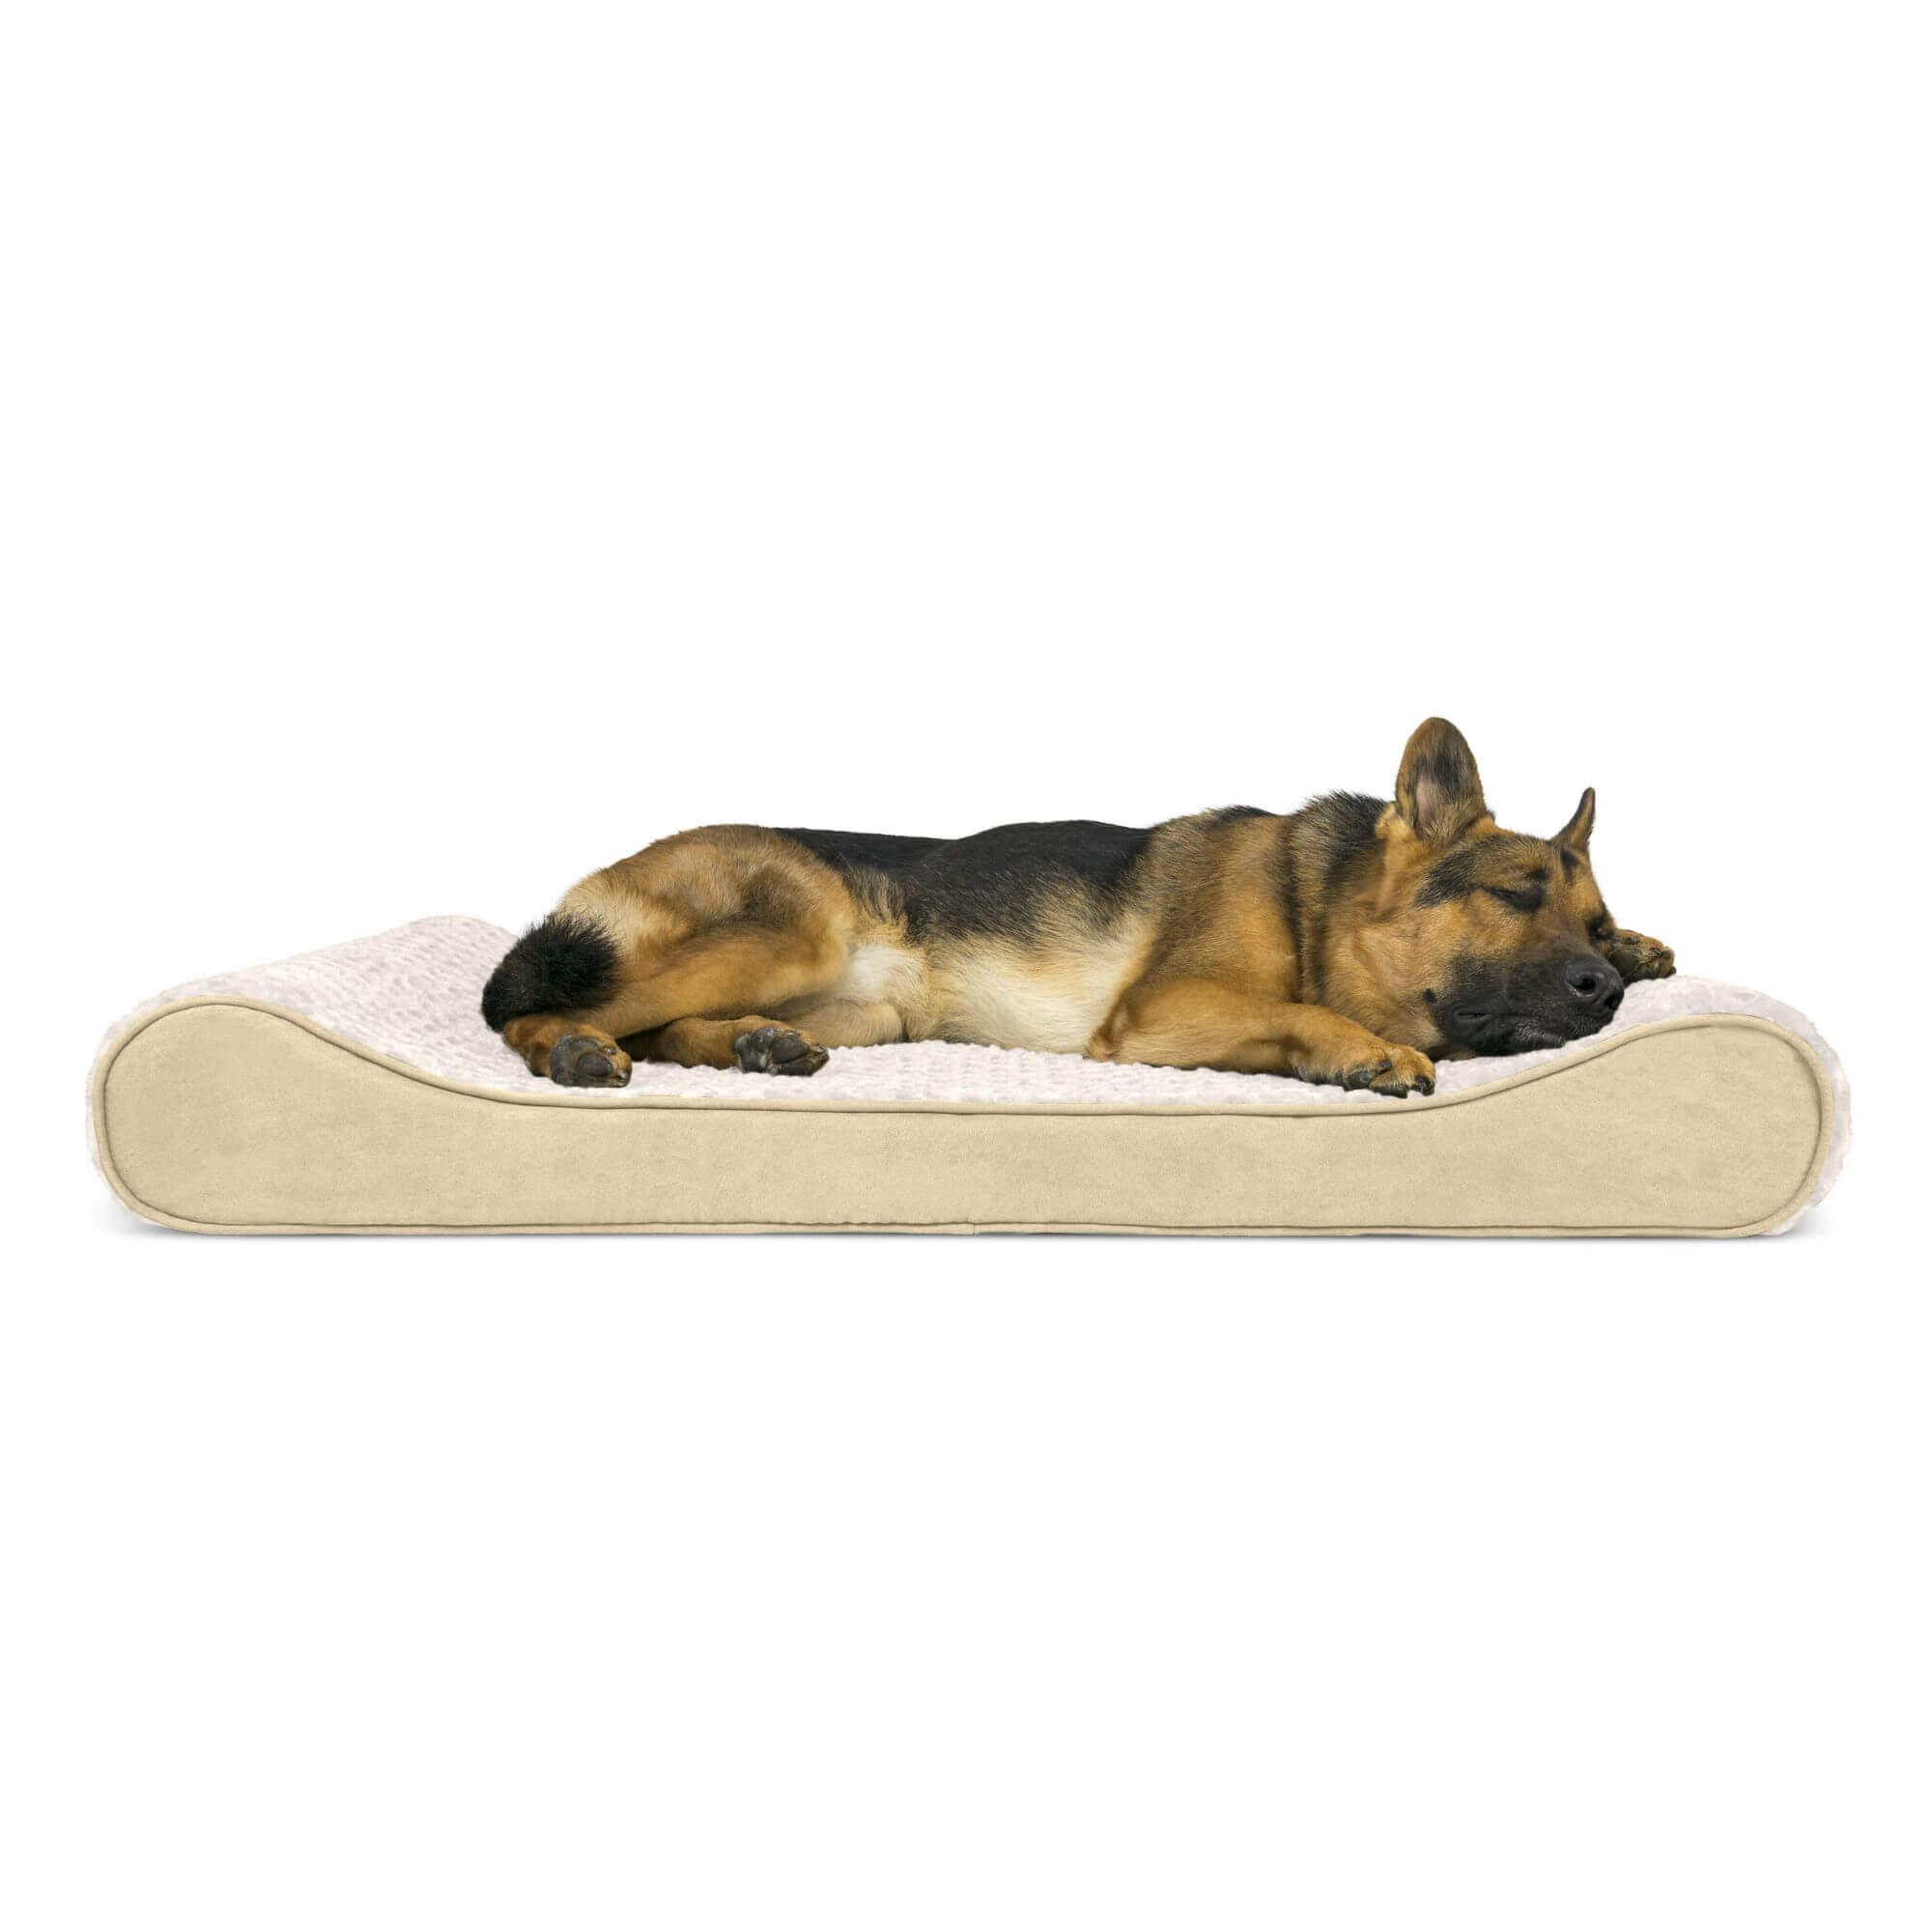 Ultra Plush Luxe Lounger Orthopedic Dog Bed - Cream